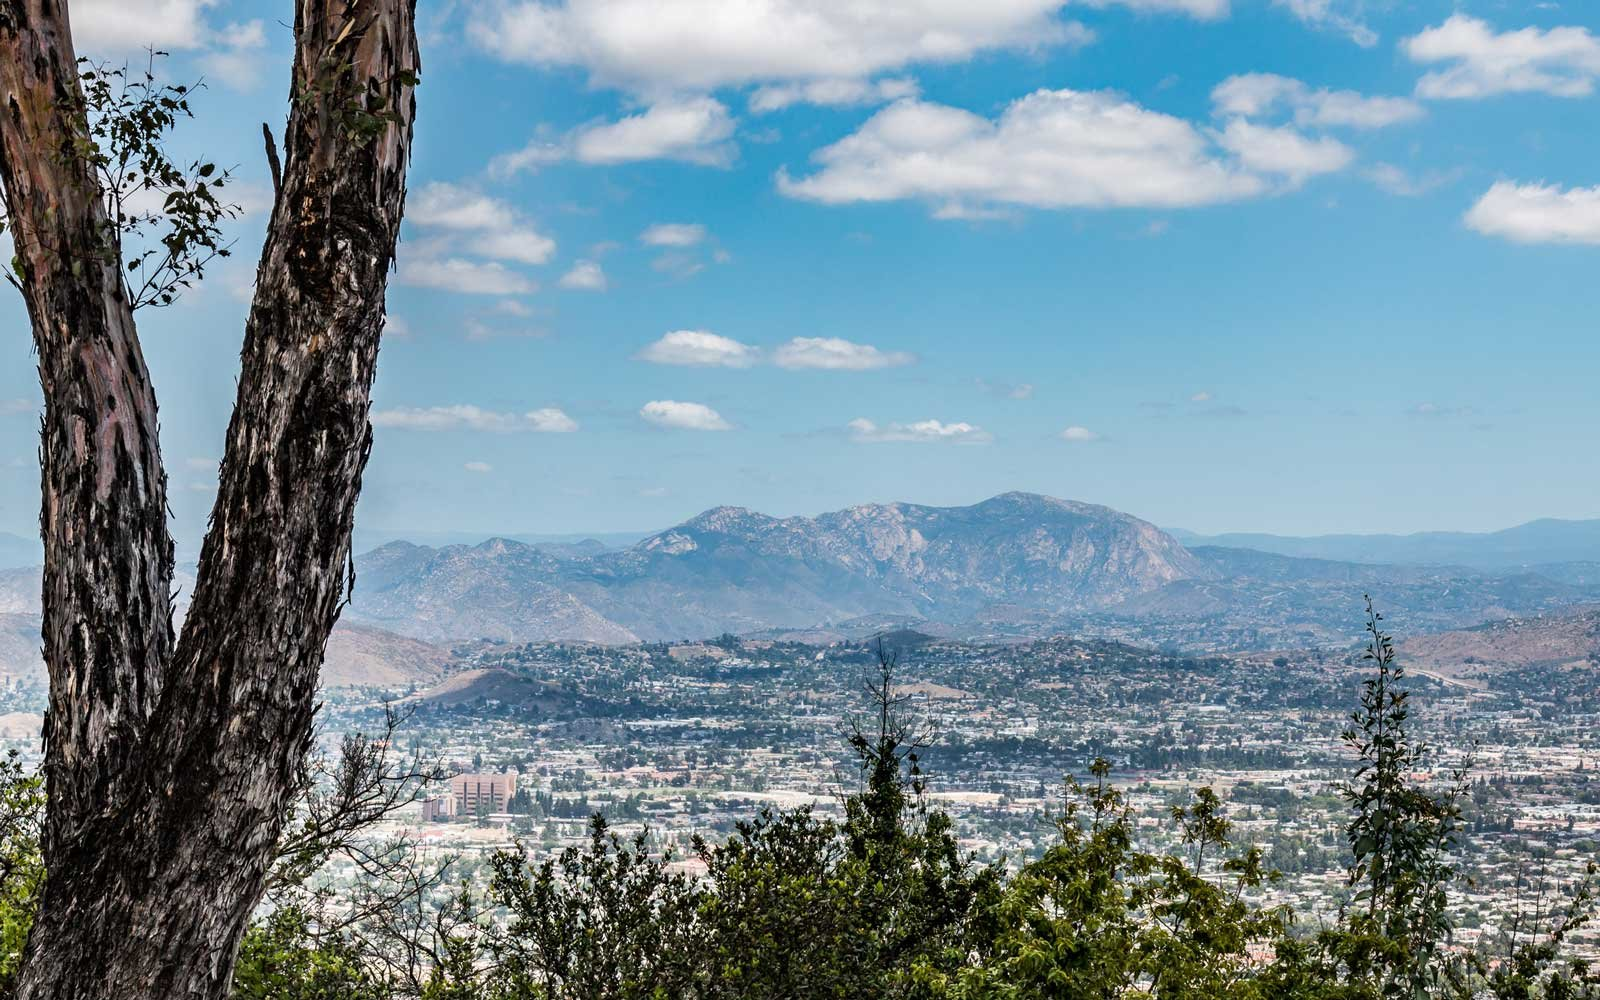 Cuyamaca Peak and El Cajon View From Mt. Helix Park